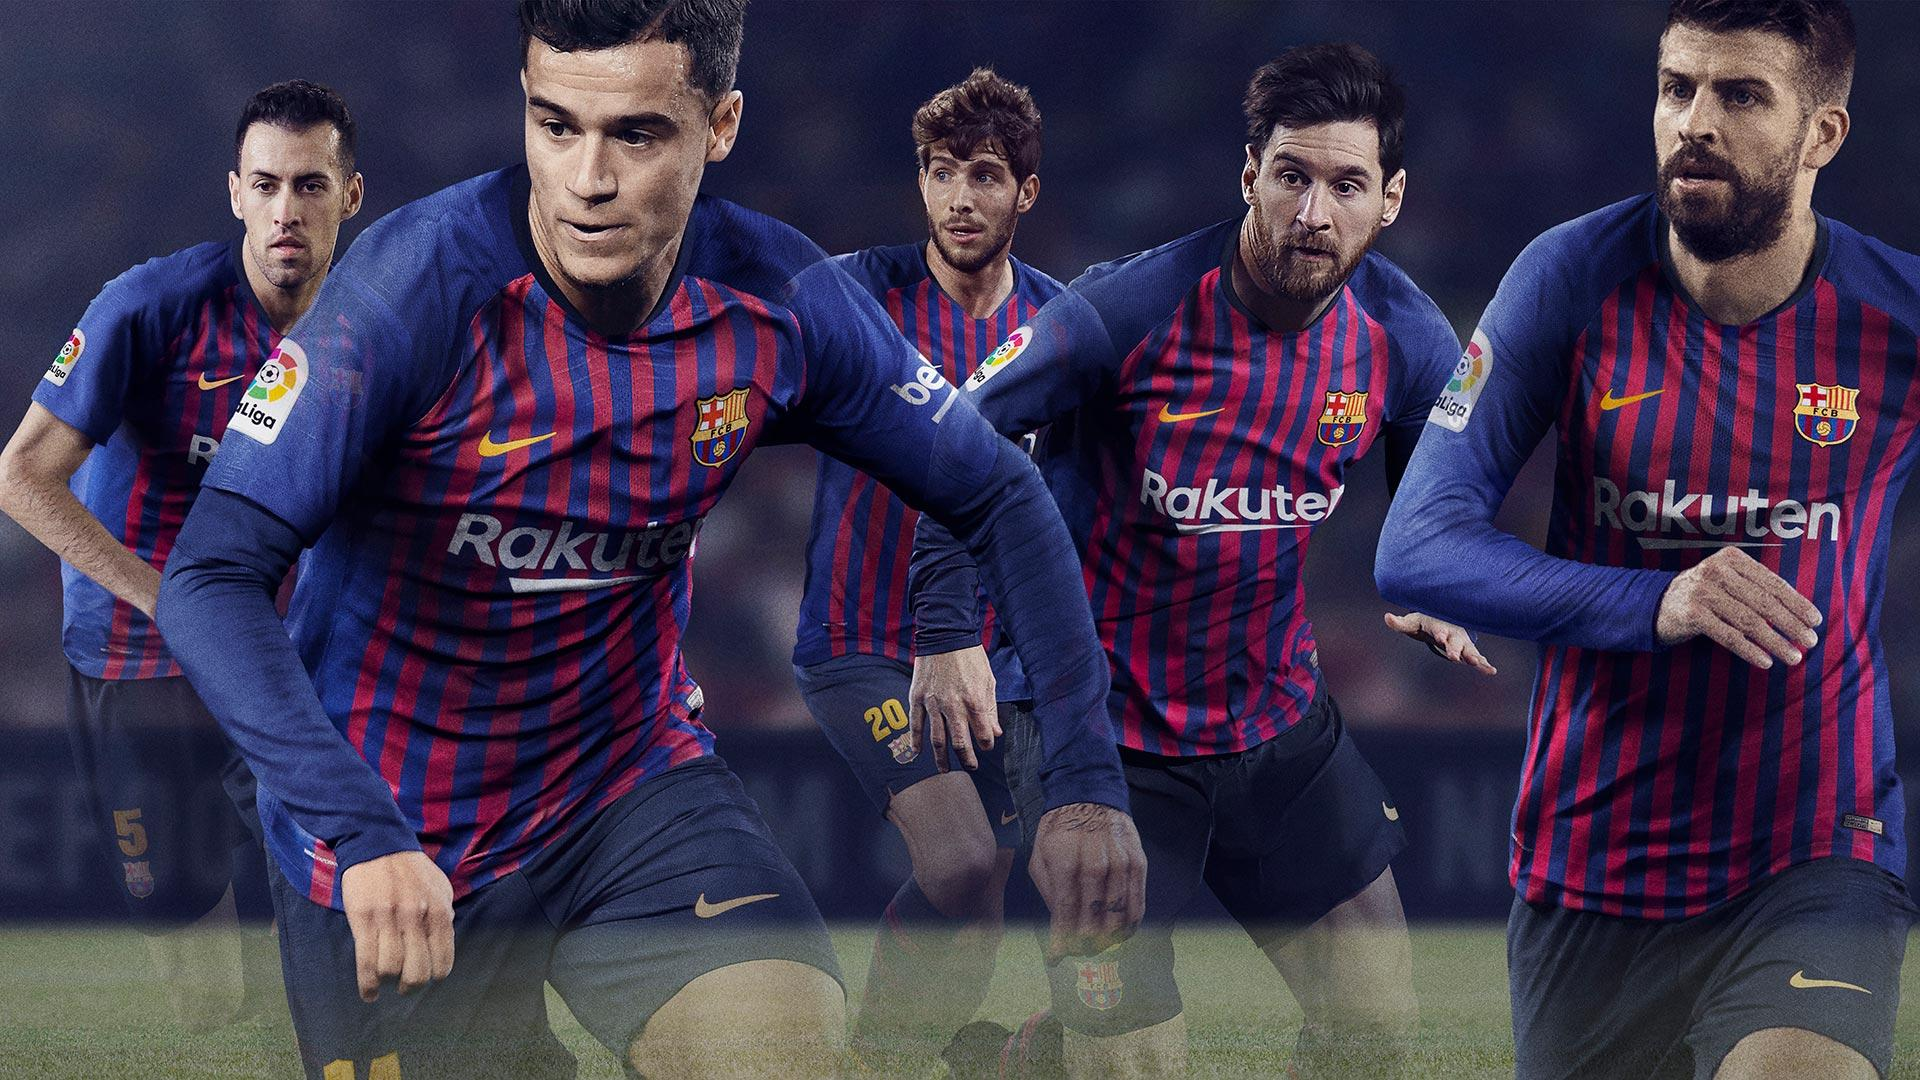 FC Barcelona unveils new Nike kit for 201819 season 1920x1080